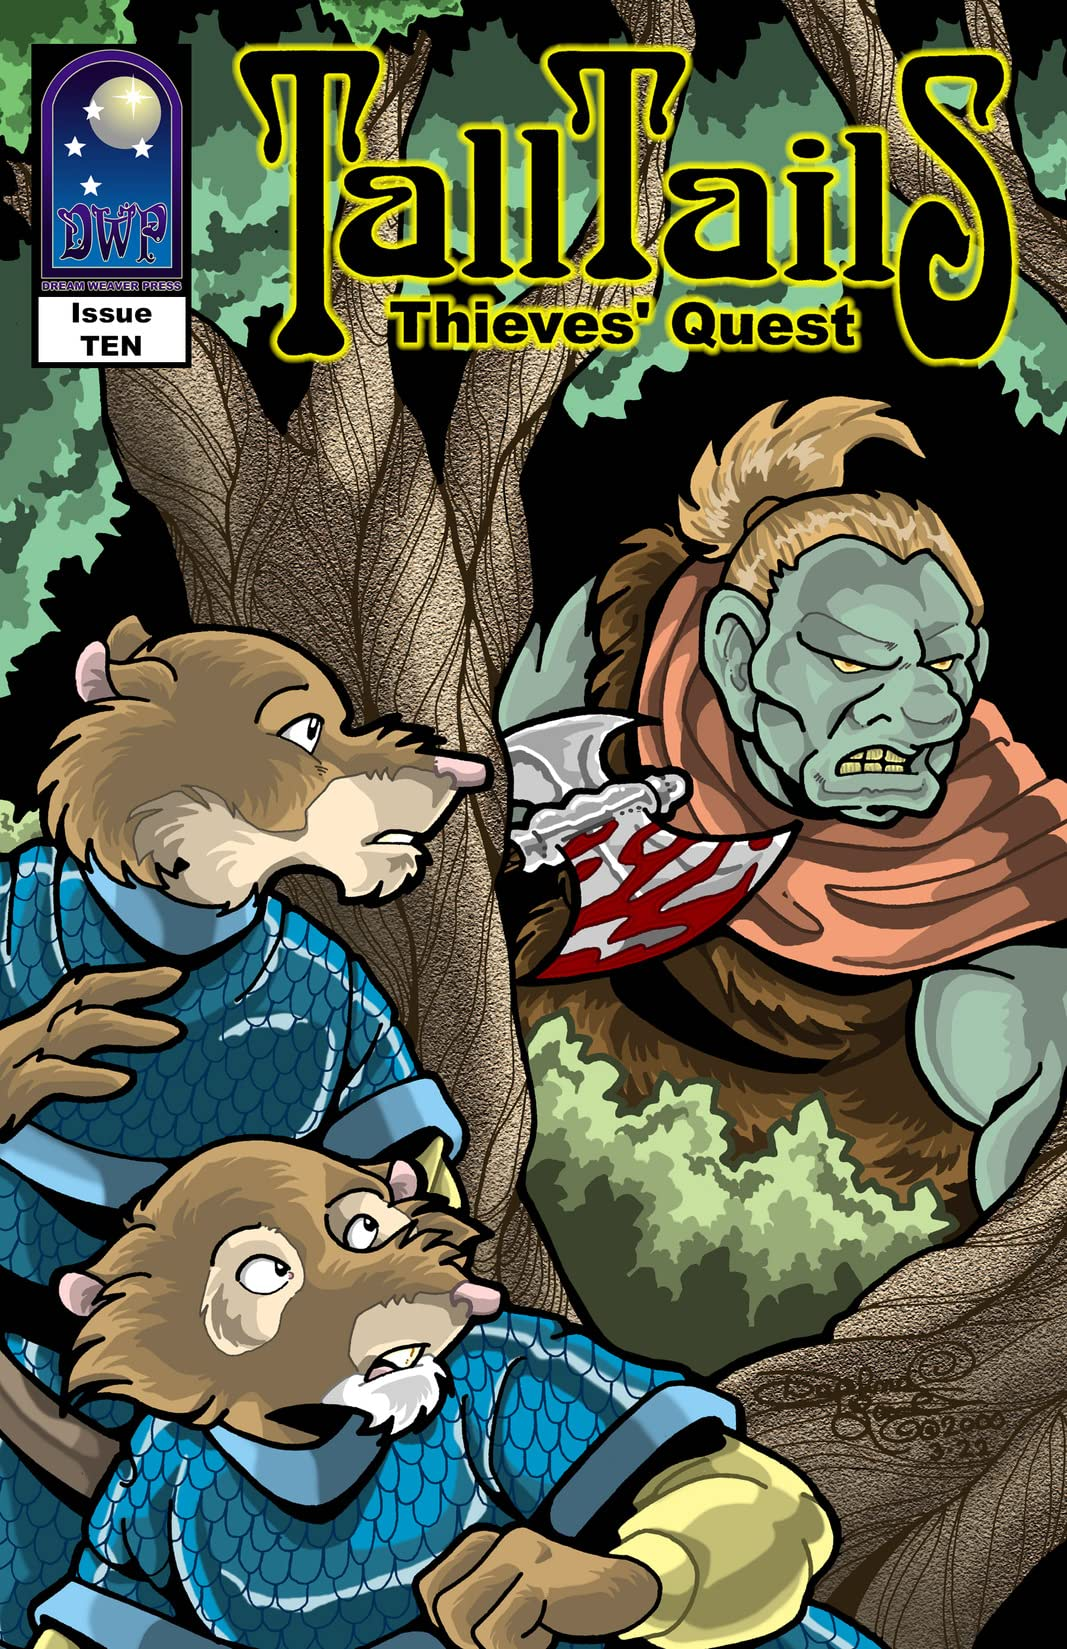 Tall Tails: Thieves' Quest #10